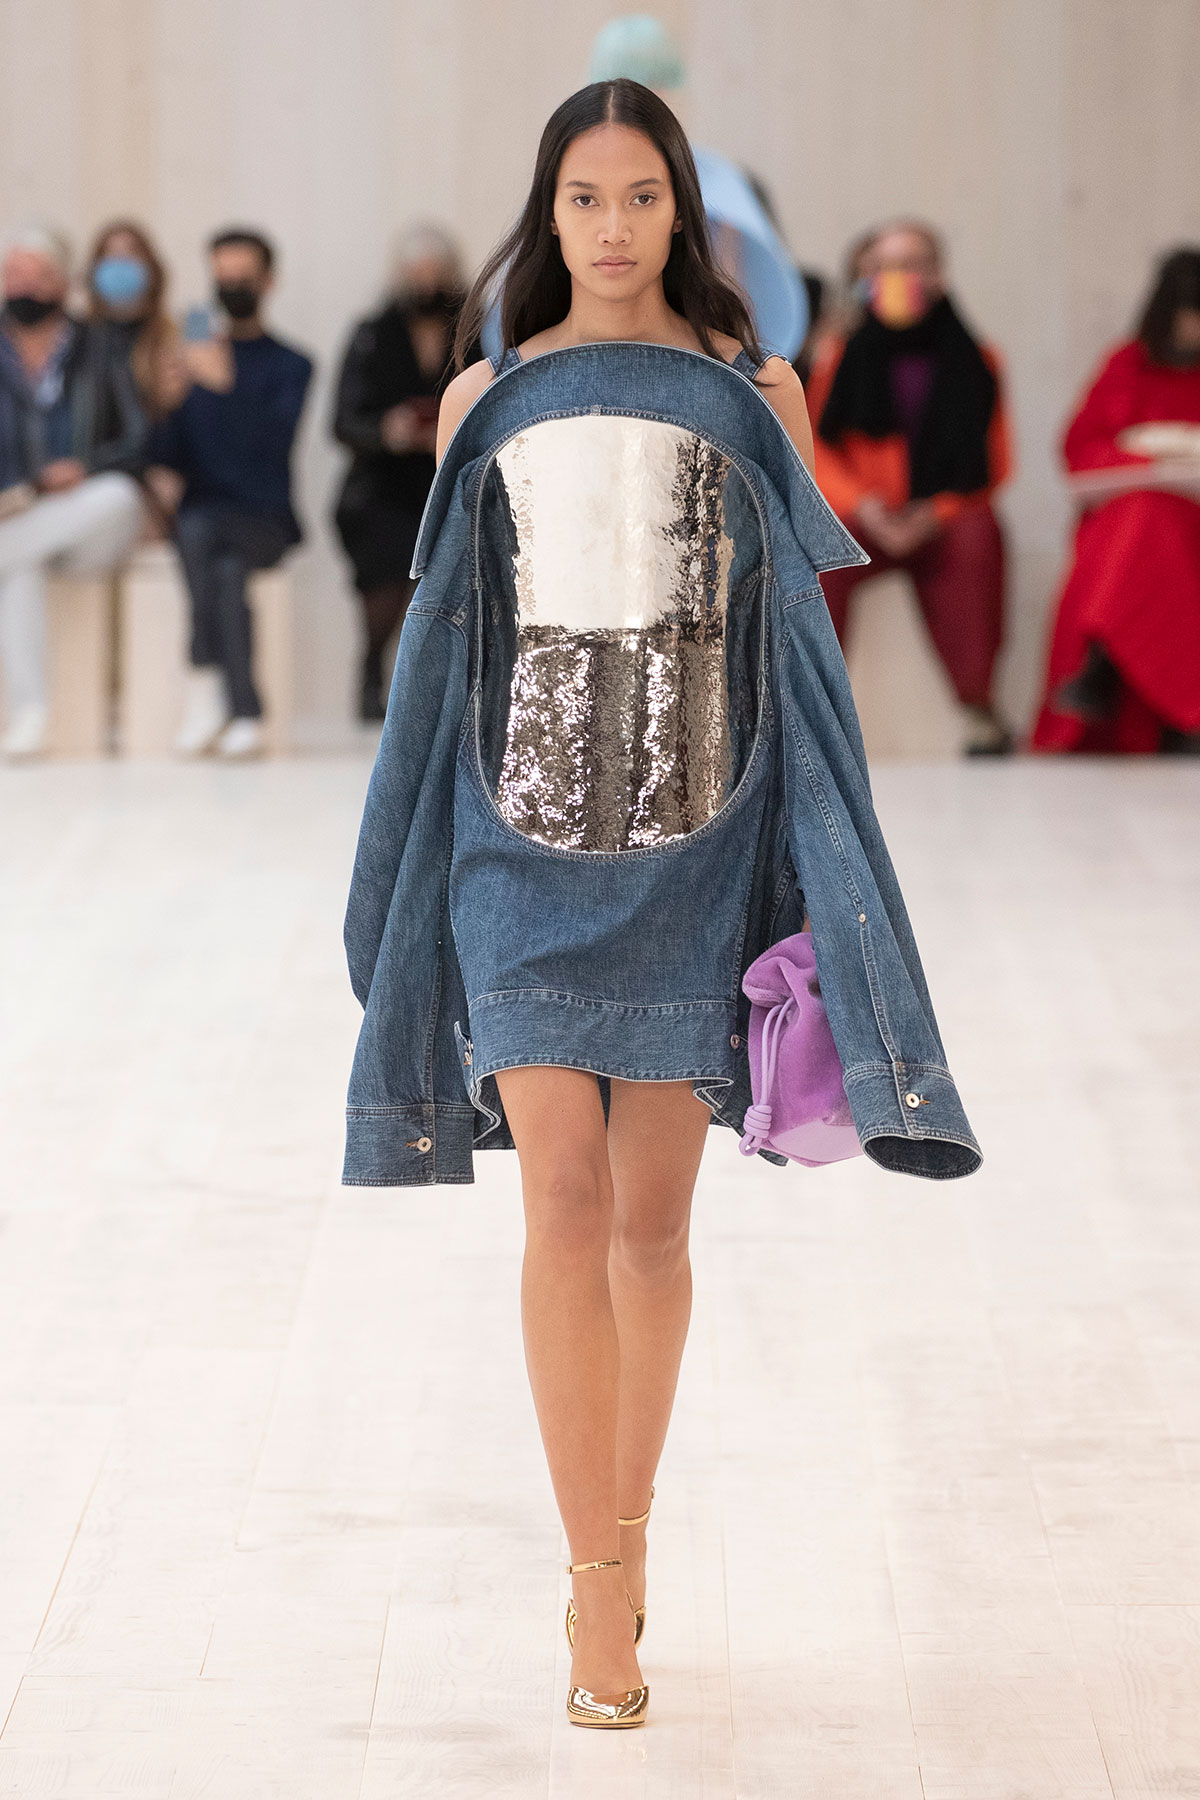 LOEWE Spring Summer 2022 Collection